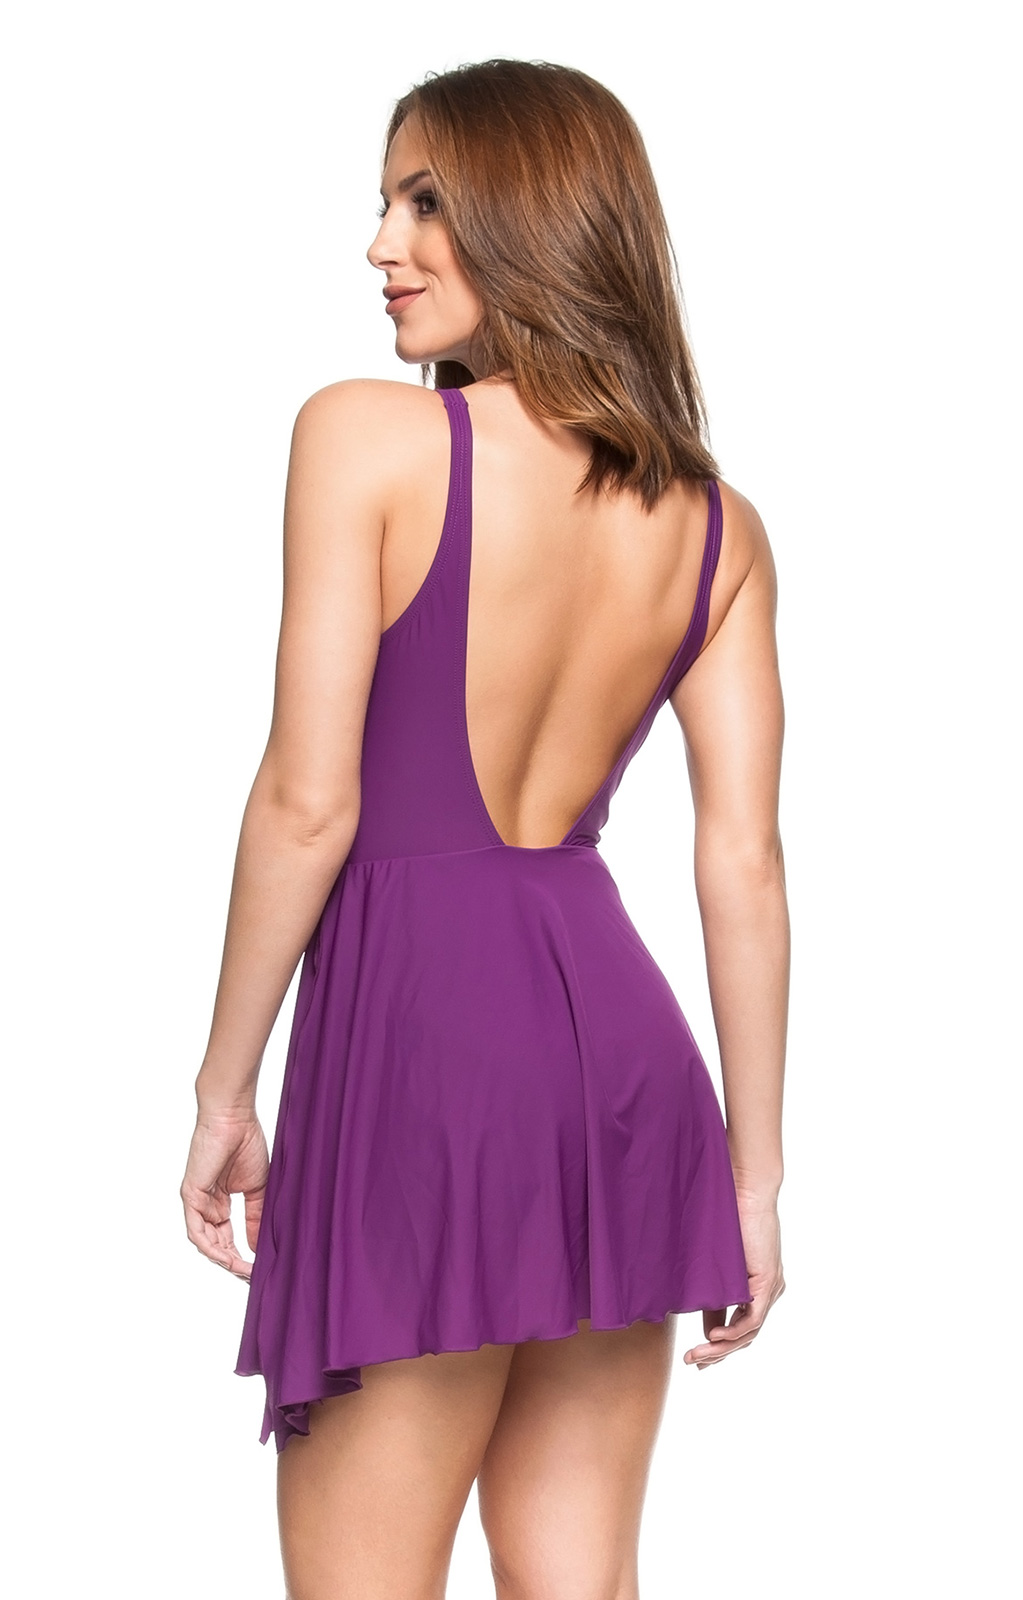 ecccf547a8 One piece swimsuits Purple Tie-waisted One-piece Swimsuit - Salsa